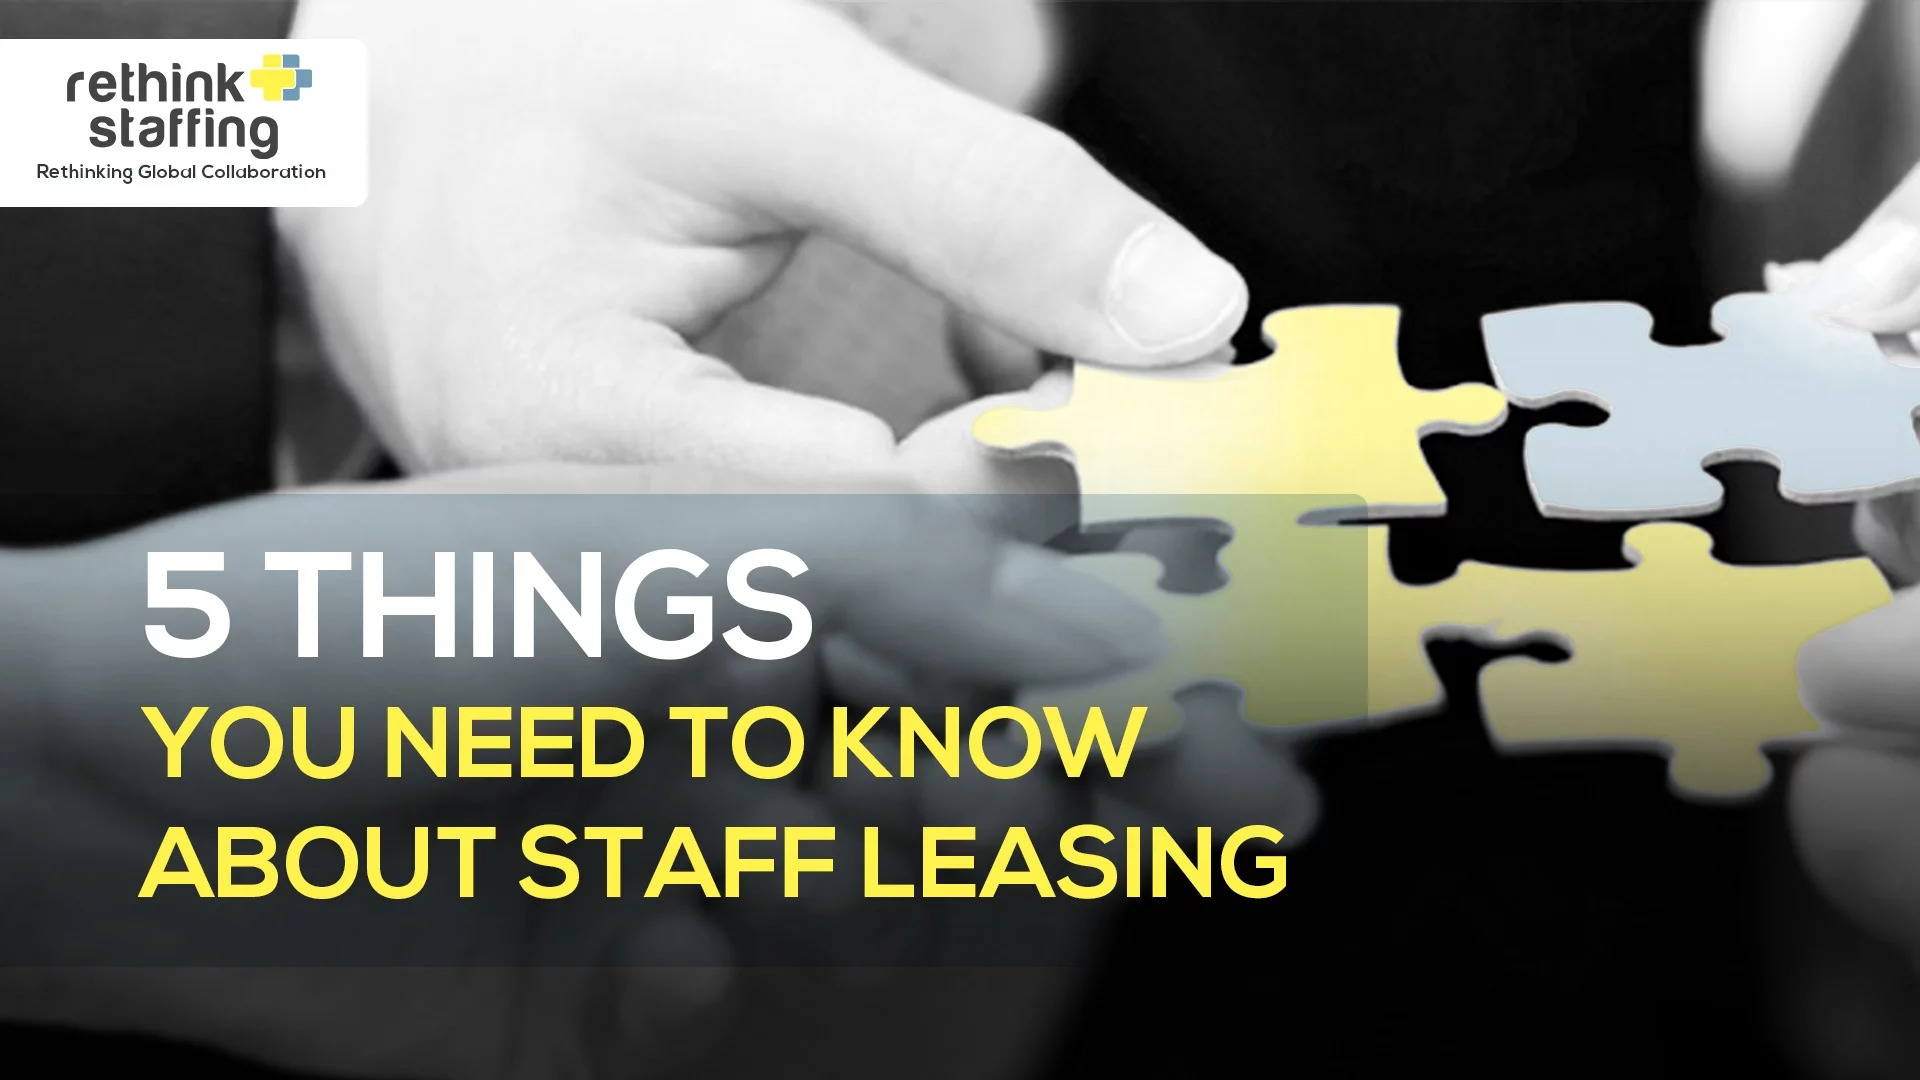 5 Things You Need to Know About Staff Leasing